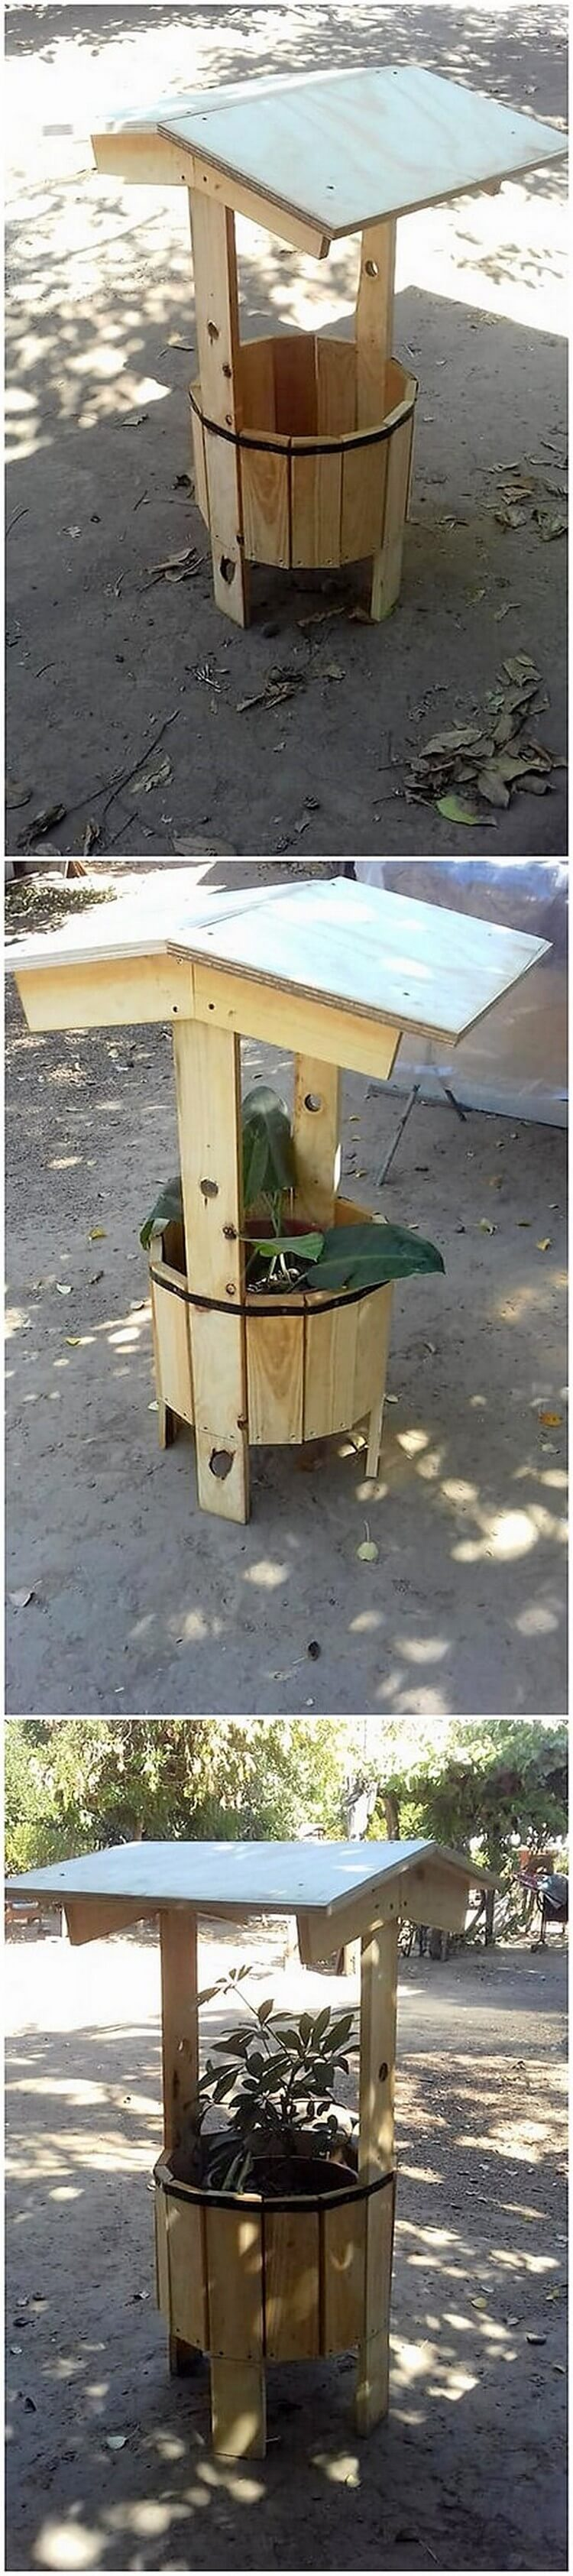 Pallet Wishing Well with Planter